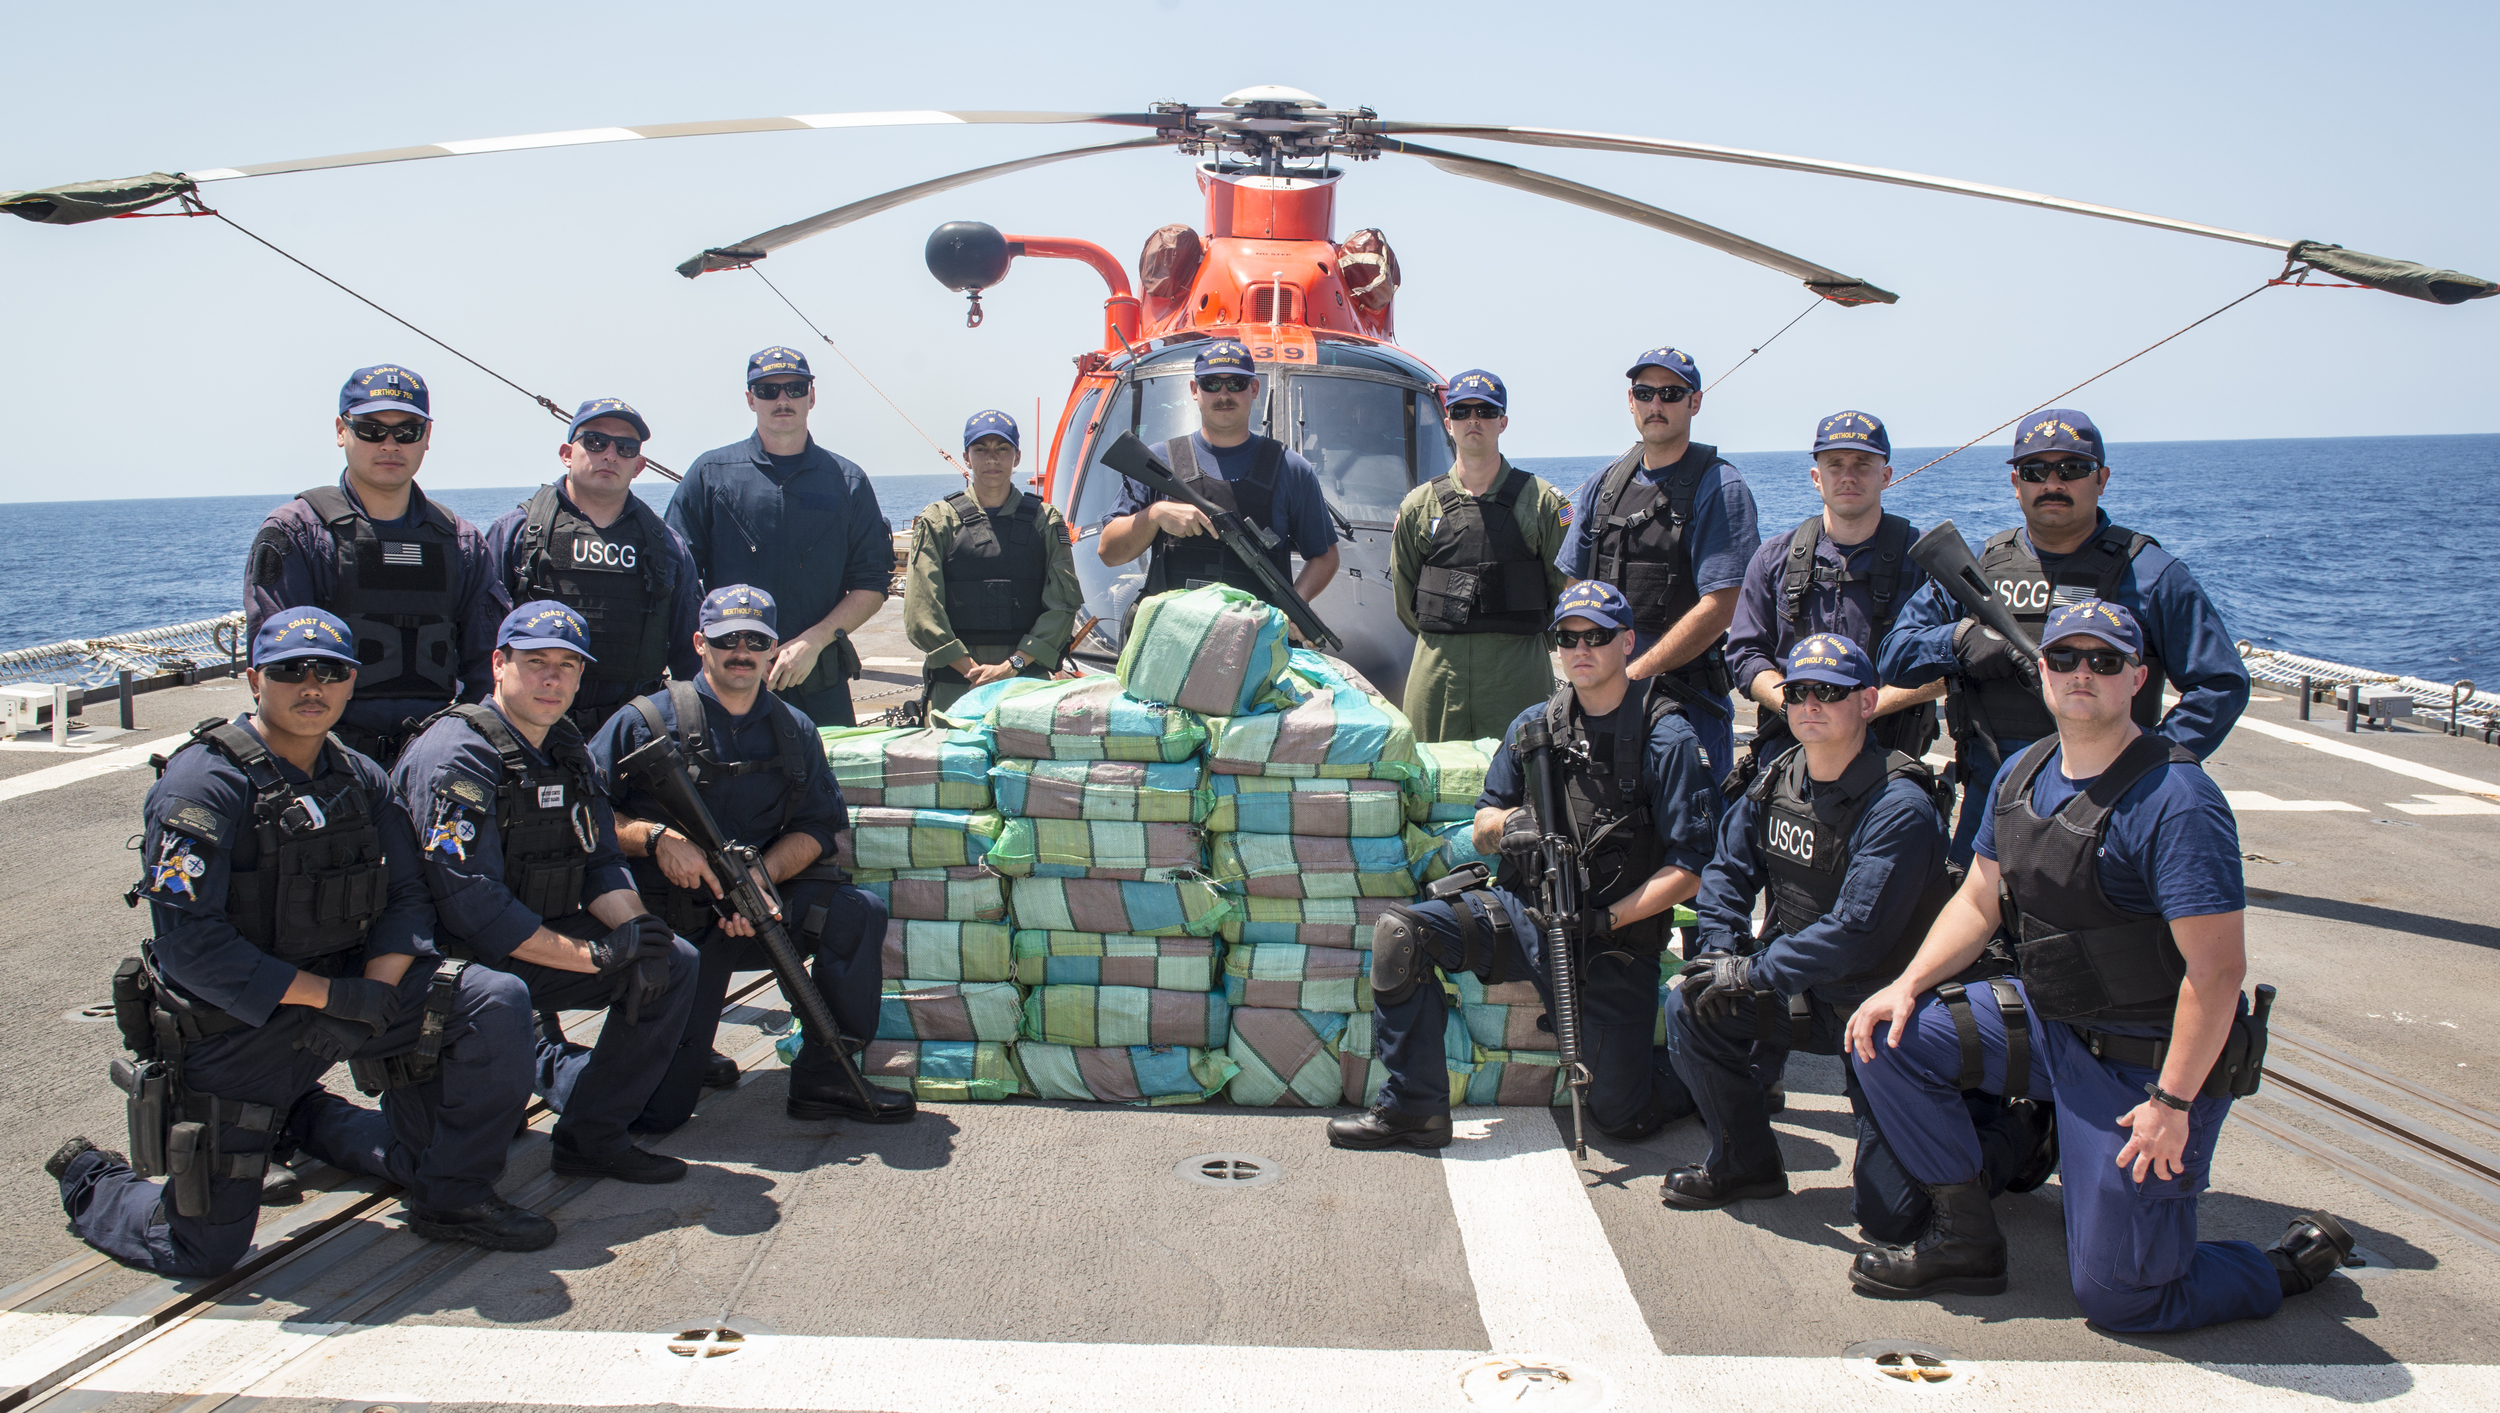 Mens Journal   Drug War On the High Seas: Onboard the Coast Guard's Billion-Dollar Busts  The thwap, thwap, thwap of a rotor's blades is the first indication that the smugglers are screwed. Out in the Pacific, 200 miles southwest of Guatemala, three Ecuadorean men look up to see an orange helicopter locked onto their 35-foot boat. If successful, their weeklong drug run would have netted each of them a year's income. Instead, they are now heaving $25 million of cocaine overboard. We forget that we're still fighting an $85 billion coke war. And these days it's the Coast Guard, the fifth, forgotten branch of the military, that's on the front lines. Between 2010 and 2015 the CG captured more than 500 tons of uncut cocaine, with a wholesale value of nearly $15 billion.